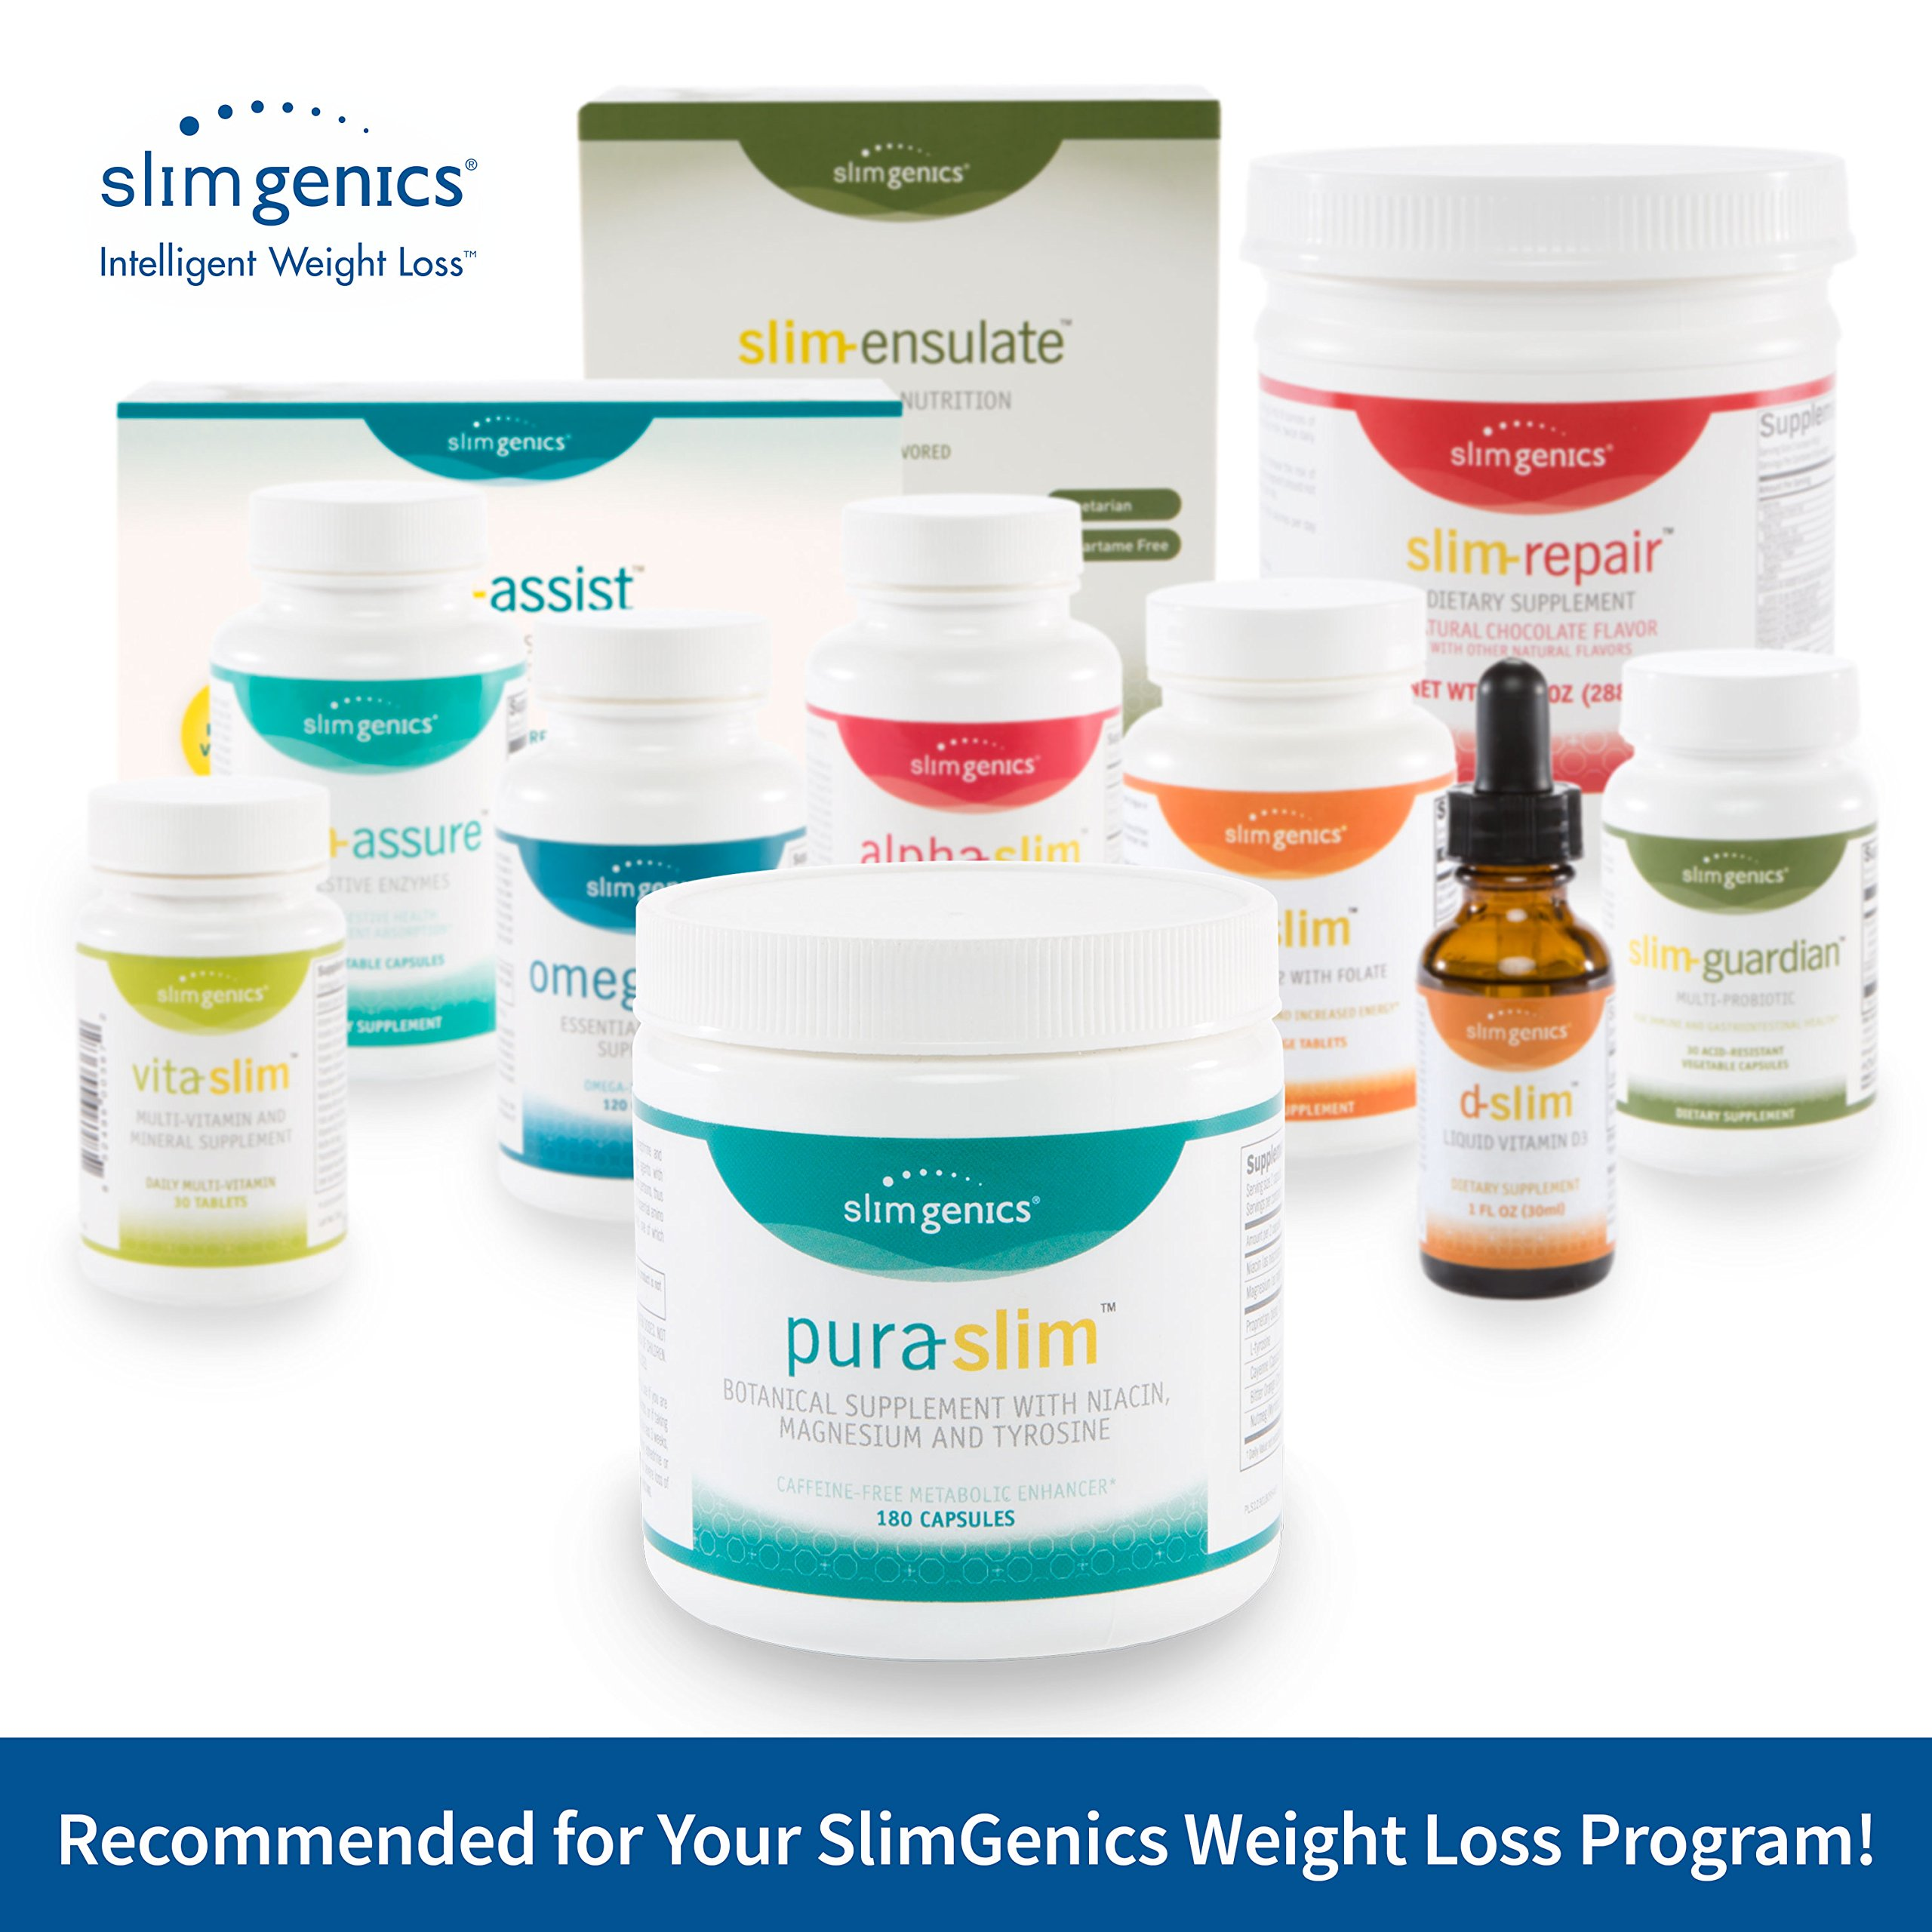 SlimGenics Pura-Slim | Metabolizer Herb – Metabolic Booster with Powerful Herbs and Nutrients, Thermogenic Fat Burners for Weight Loss, Fights Fatigue and Increases Energy (180 Count) by SlimGenics (Image #6)